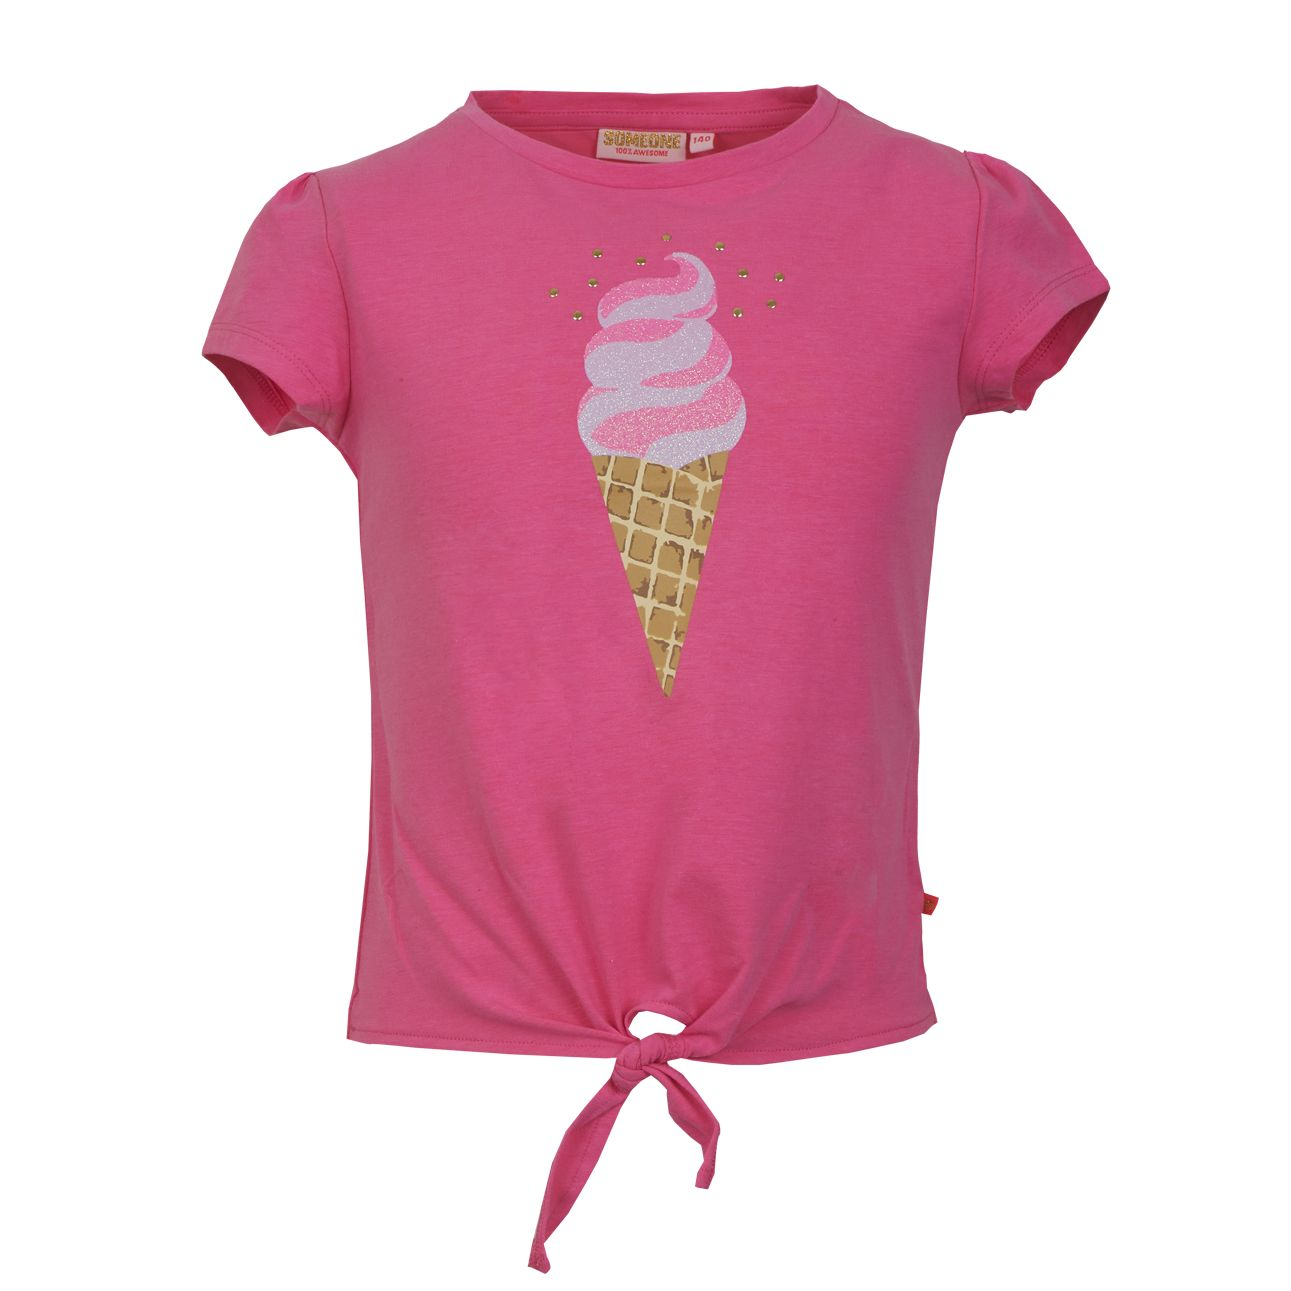 T-Shirt Eis 134 Pink SOMEONE 100% Awesome